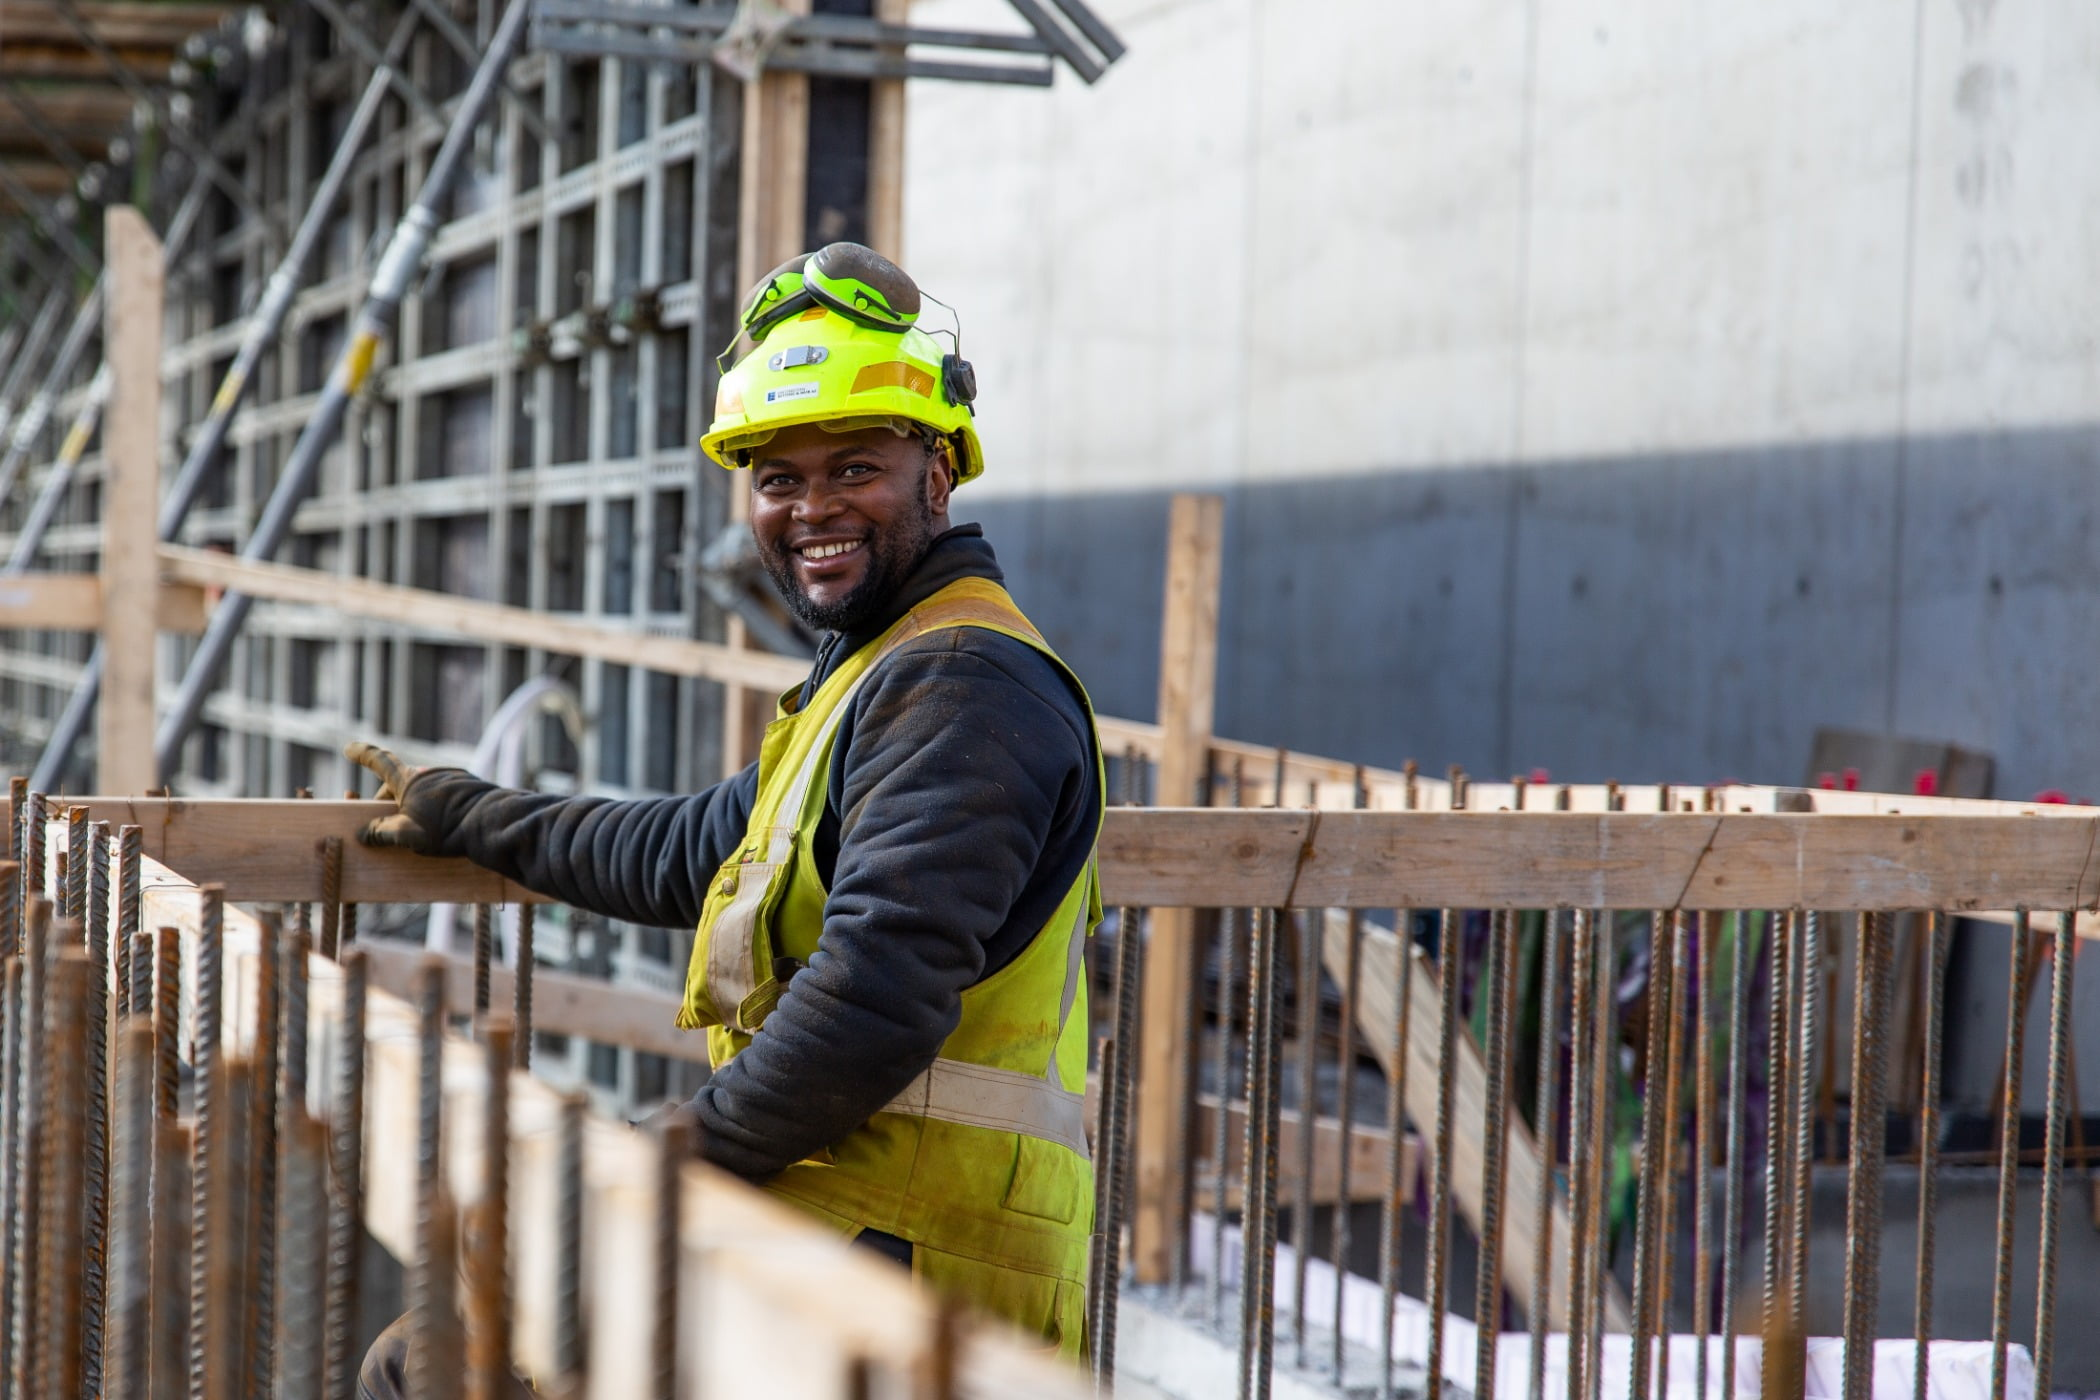 Hard hat, High-visibility clothing, Outerwear, Workwear, Helmet, Tradesman, Engineer, Fence, Smile, Yellow